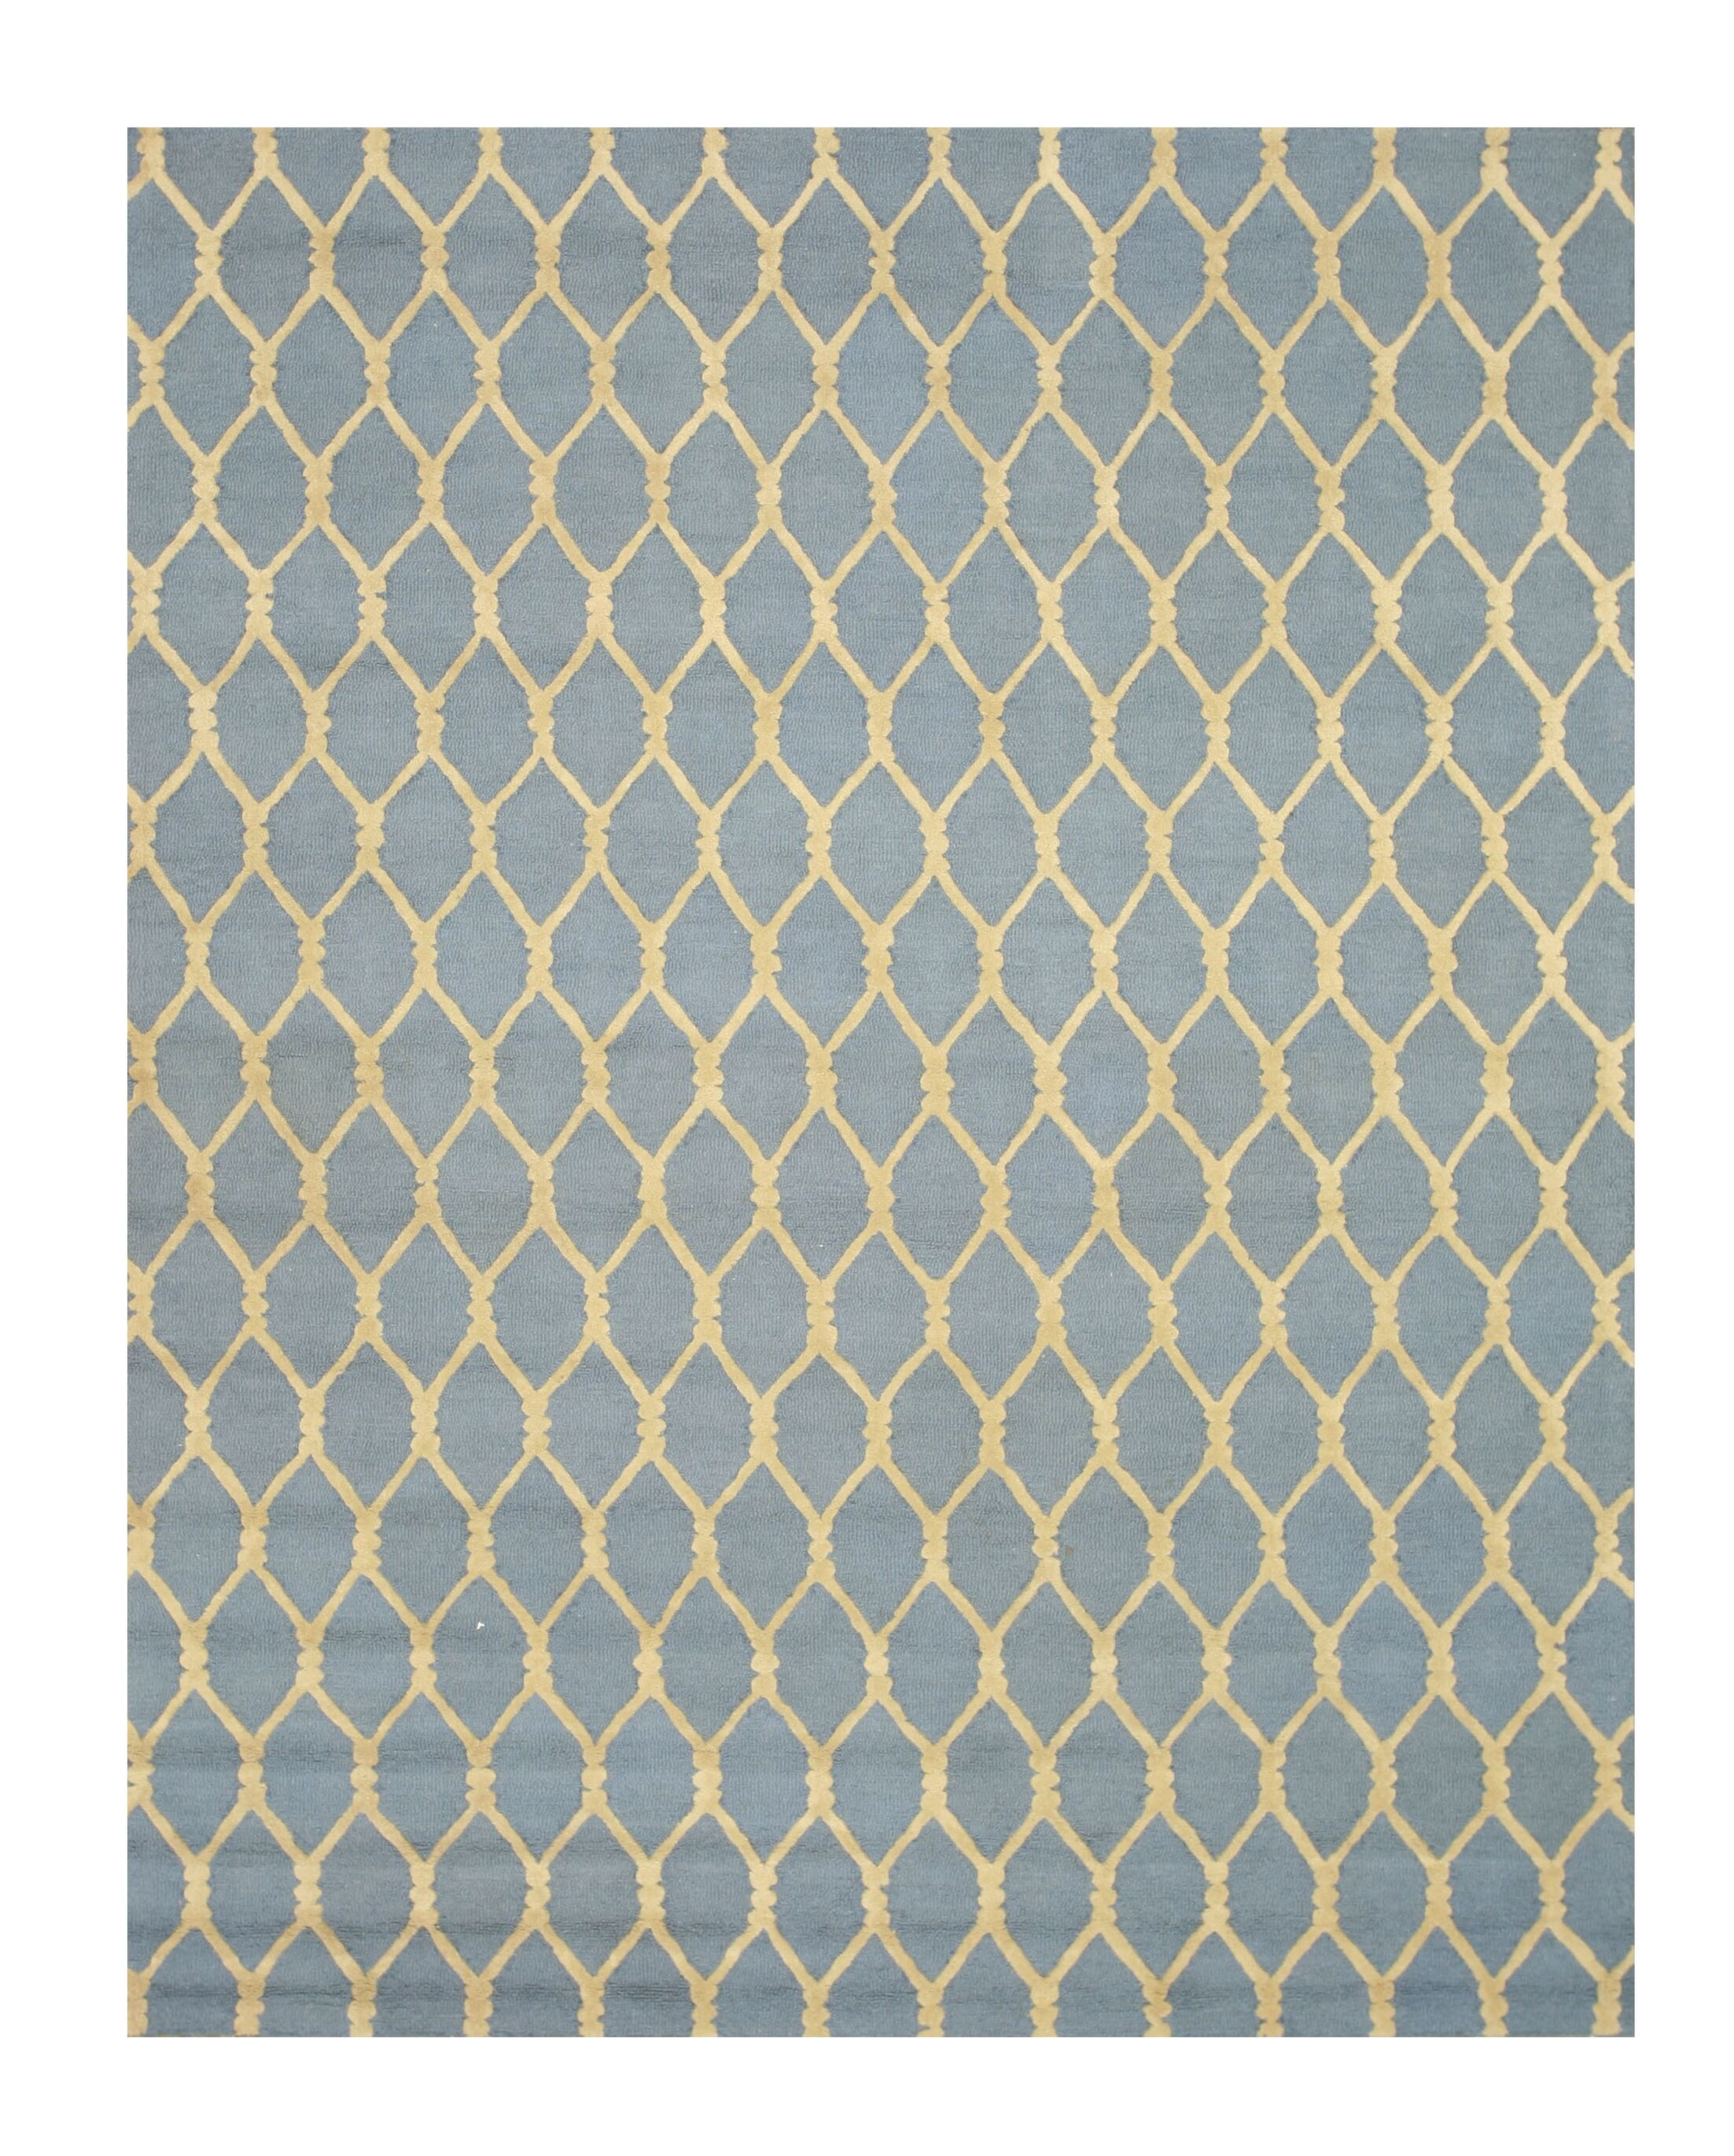 Hand-Tufted Blue Area Rug Rug Size: Rectangle 5' x 8'